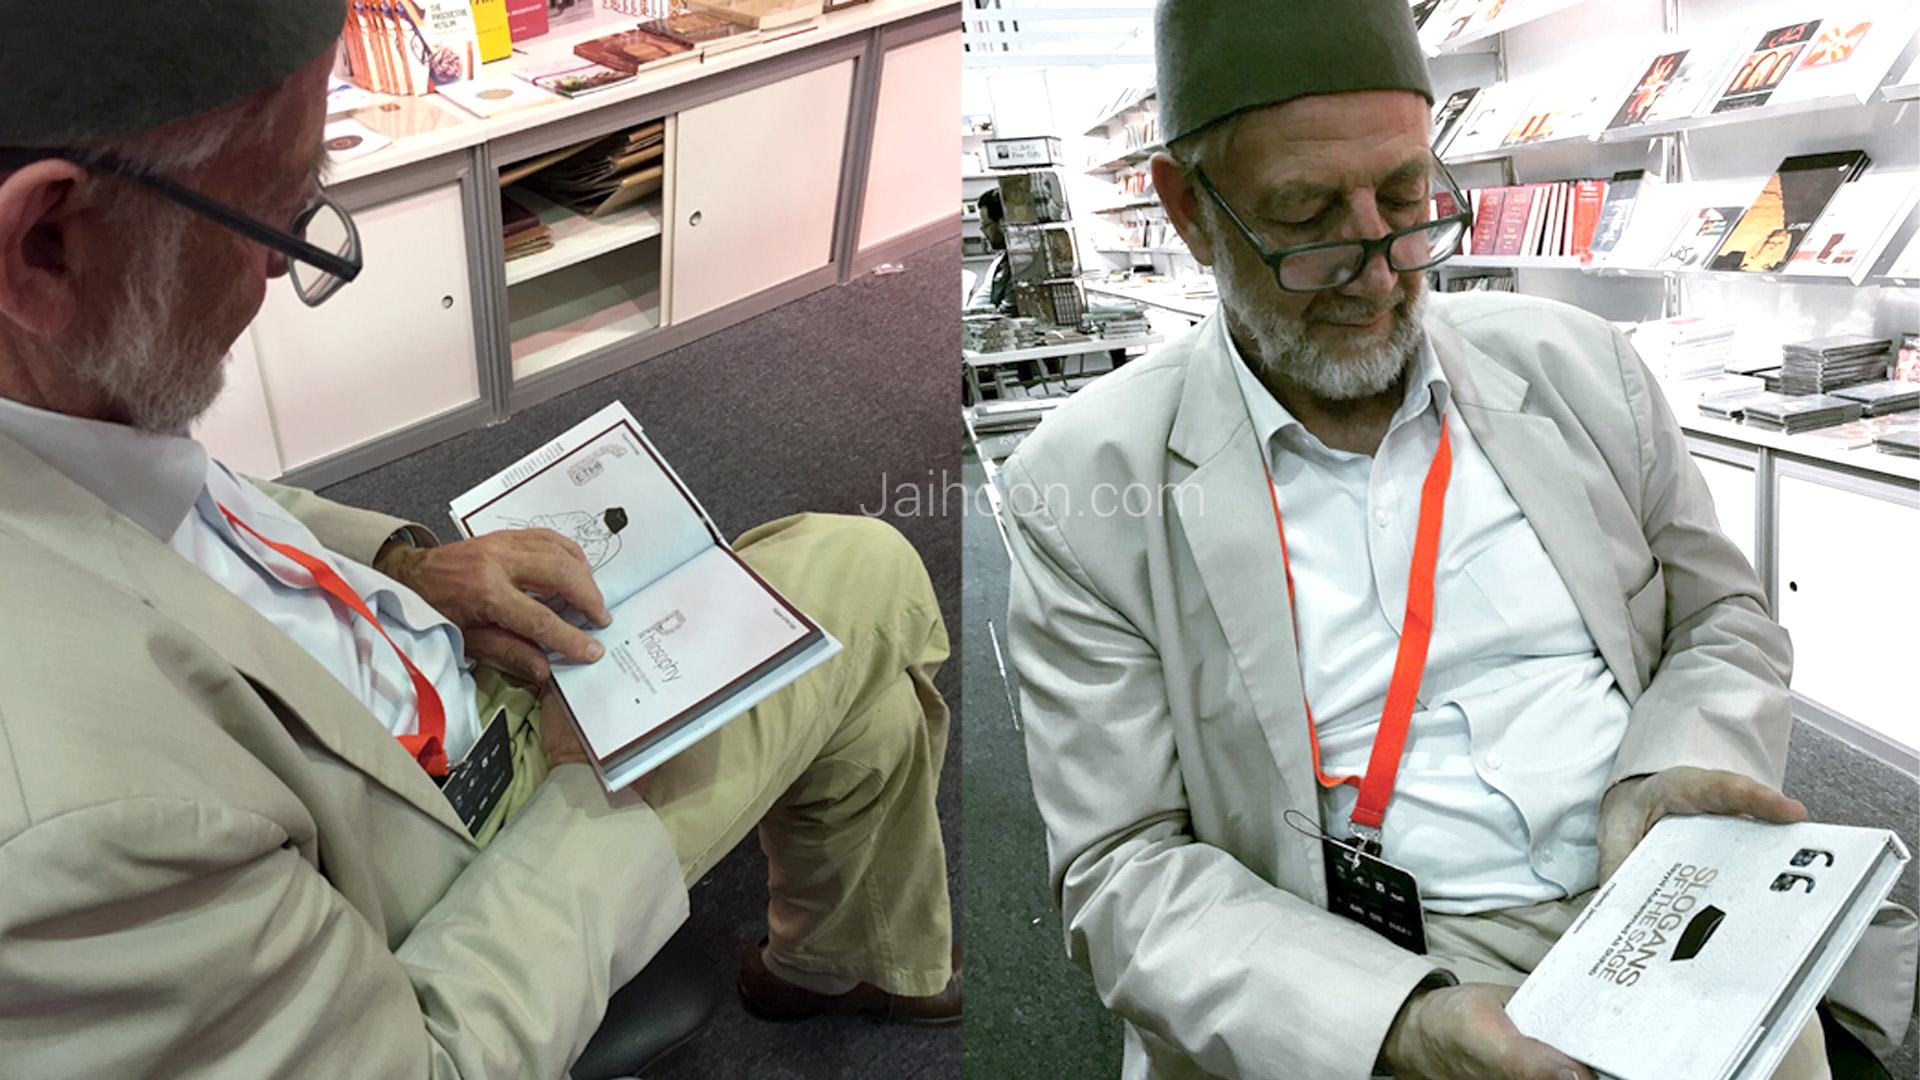 Idris Mears, prominent British book seller, reading through Slogans of the Sage, at Sharjah International Book Fair 2017